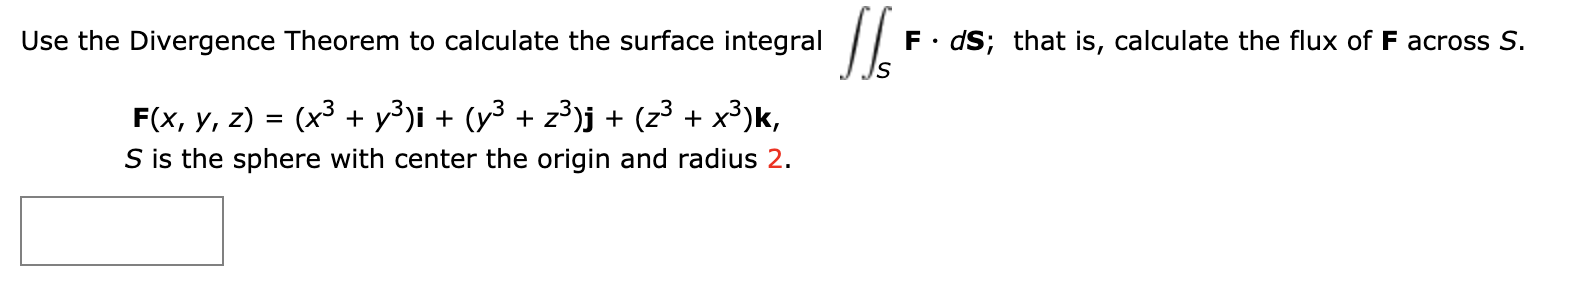 F dS; that is, calculate the flux of F across S. Use the Divergence Theorem to calculate the surface integral (x3 y3)i (y3 z3)j + (z3 + x3)k, F(x, у, 2) = S is the sphere with center the origin and radius 2.